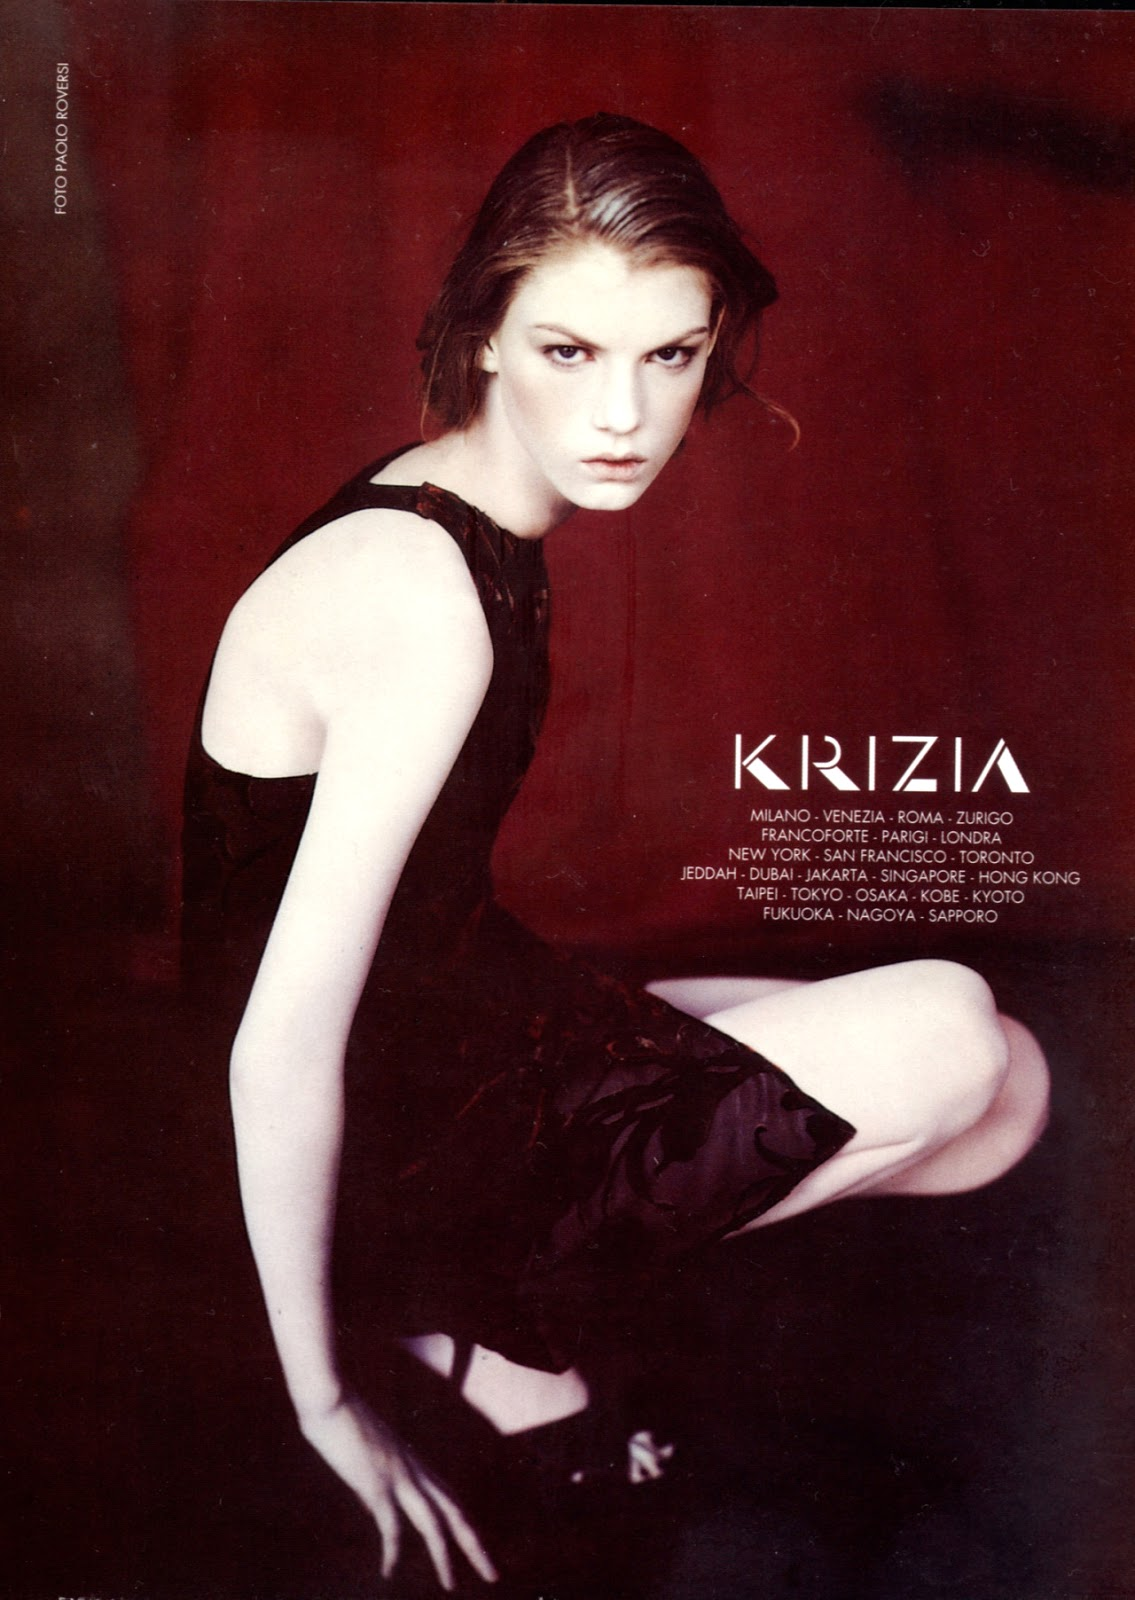 Angela Lindvall photographed by Paolo Roversi for Krizia Fall/Winter 1997 campaign as featured in Vogue Italia 1997 / Fashion designer biography, trivia, facts and collection of Krizia Mariuccia Mandelli via www.fashionedbylove.co.uk British fashion blog